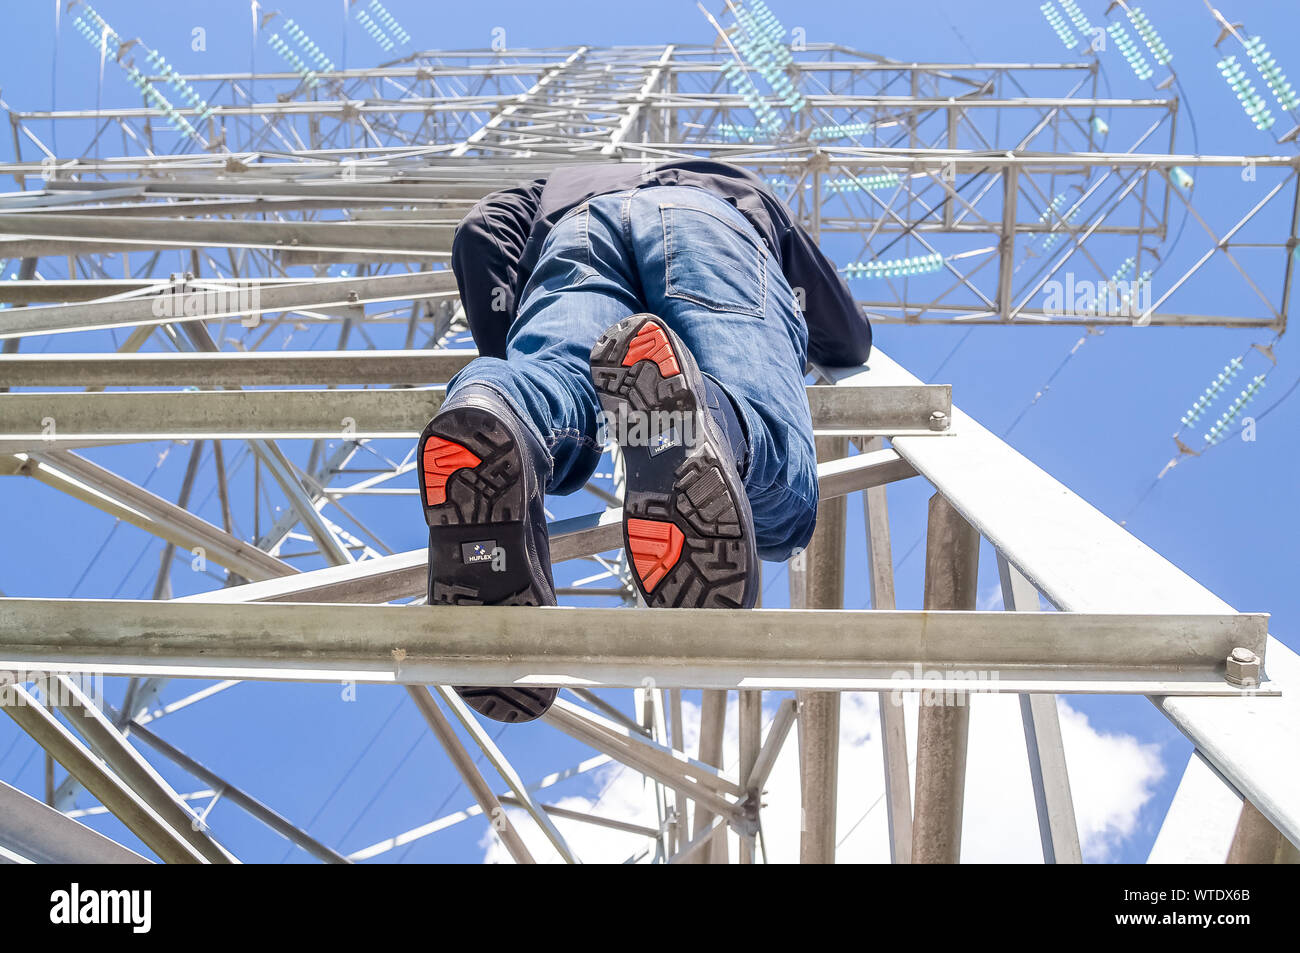 Lineman Worker Climbing On Transmission Line Tower Stock Photo Alamy